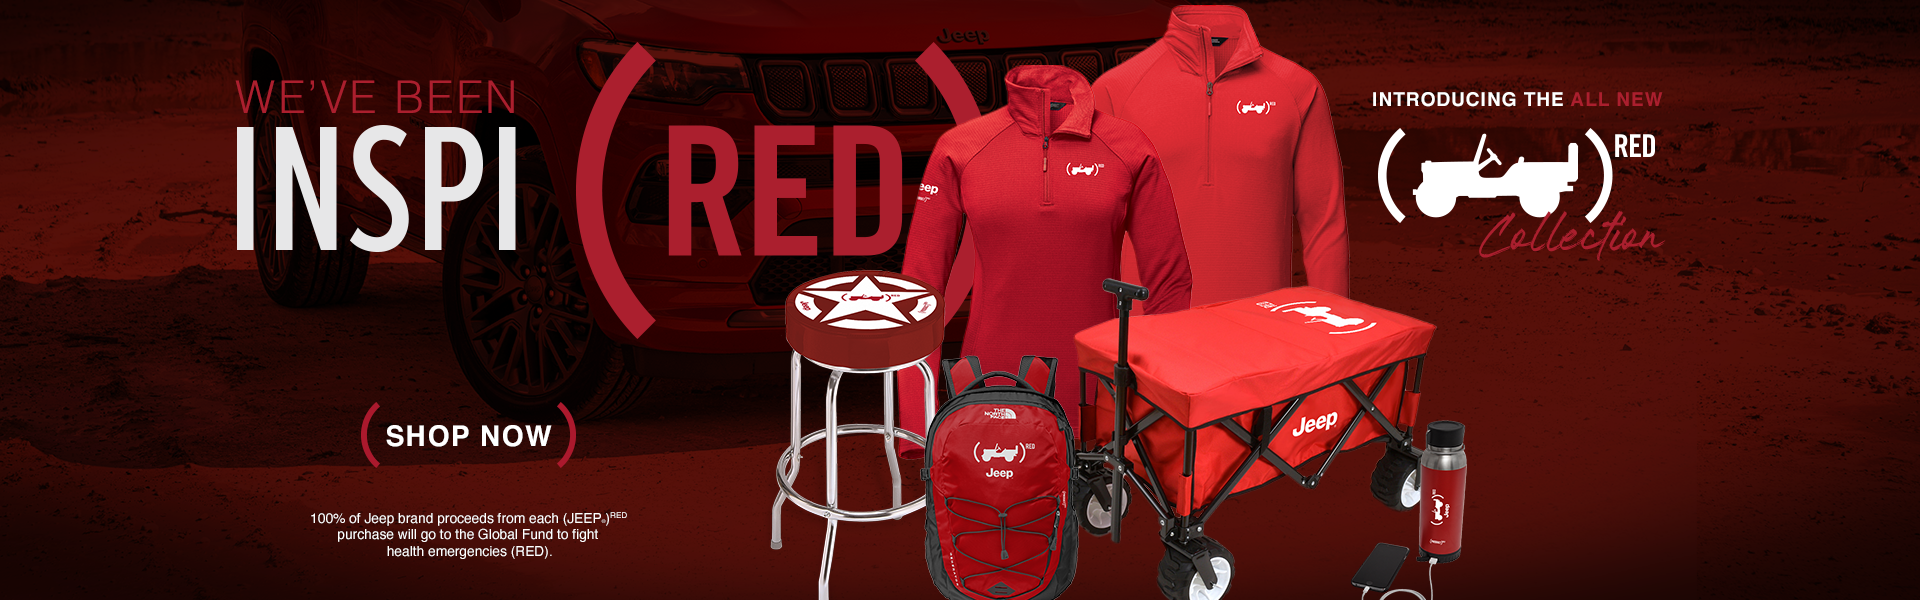 Introducing the Jeep(Red) Collection